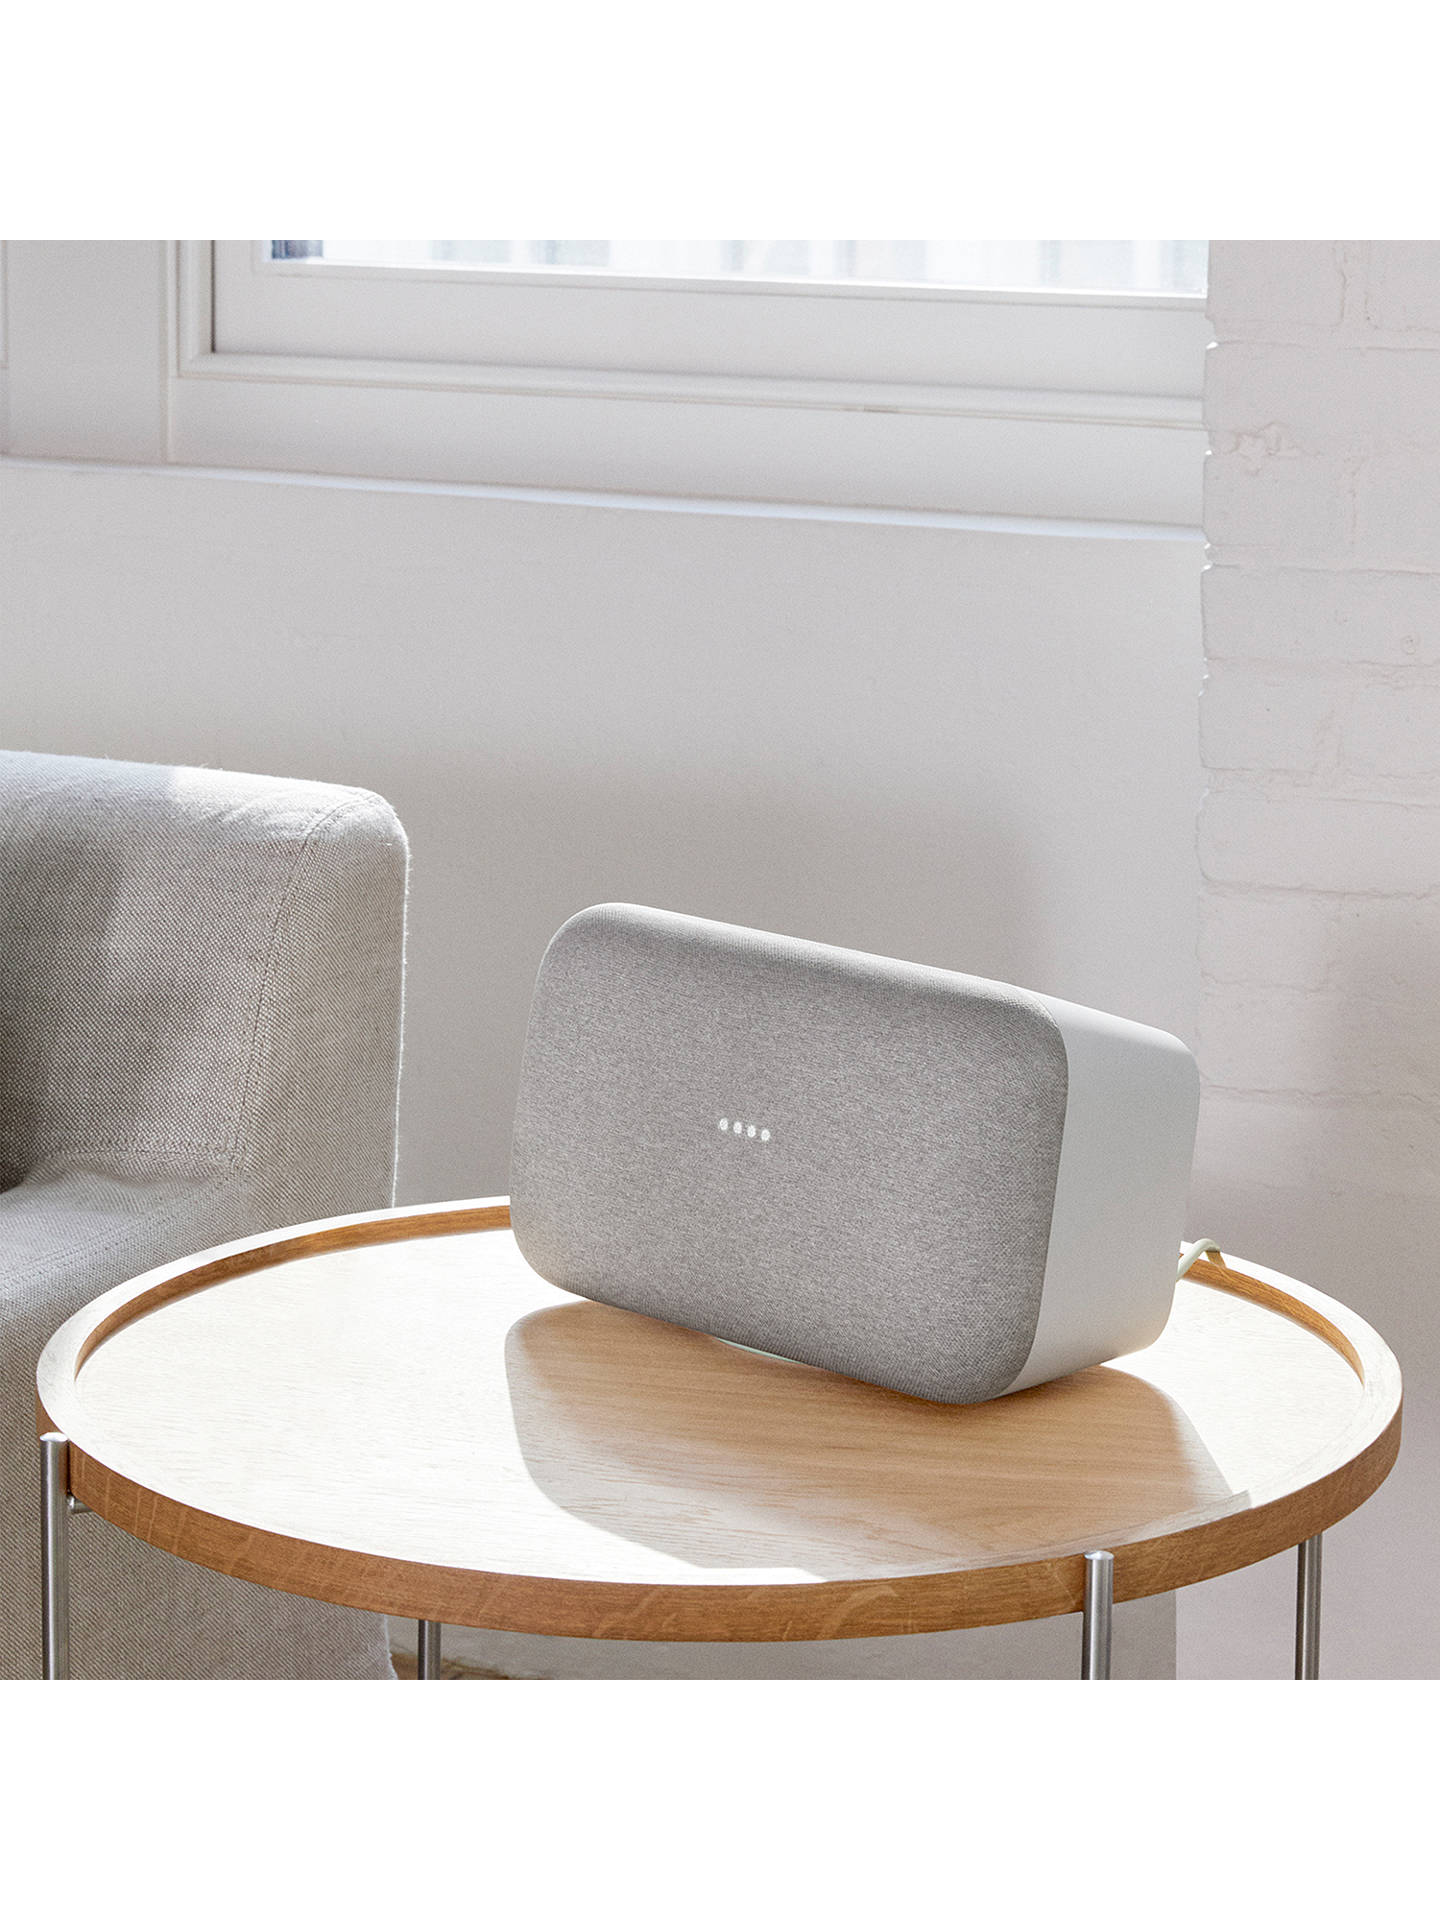 Google Home Max Hands Free Smart Speaker at John Lewis & Partners